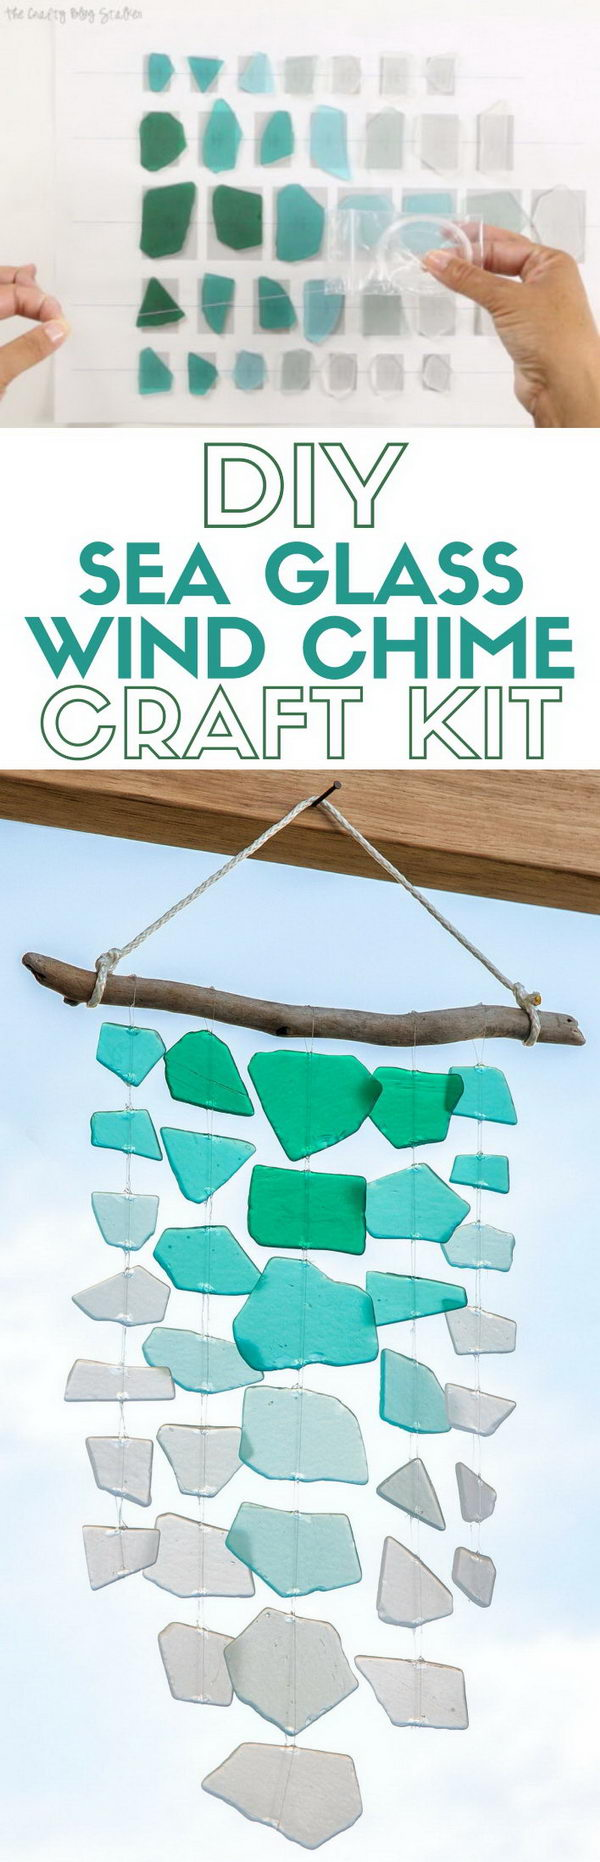 DIY Sea Glass Wind Chime.